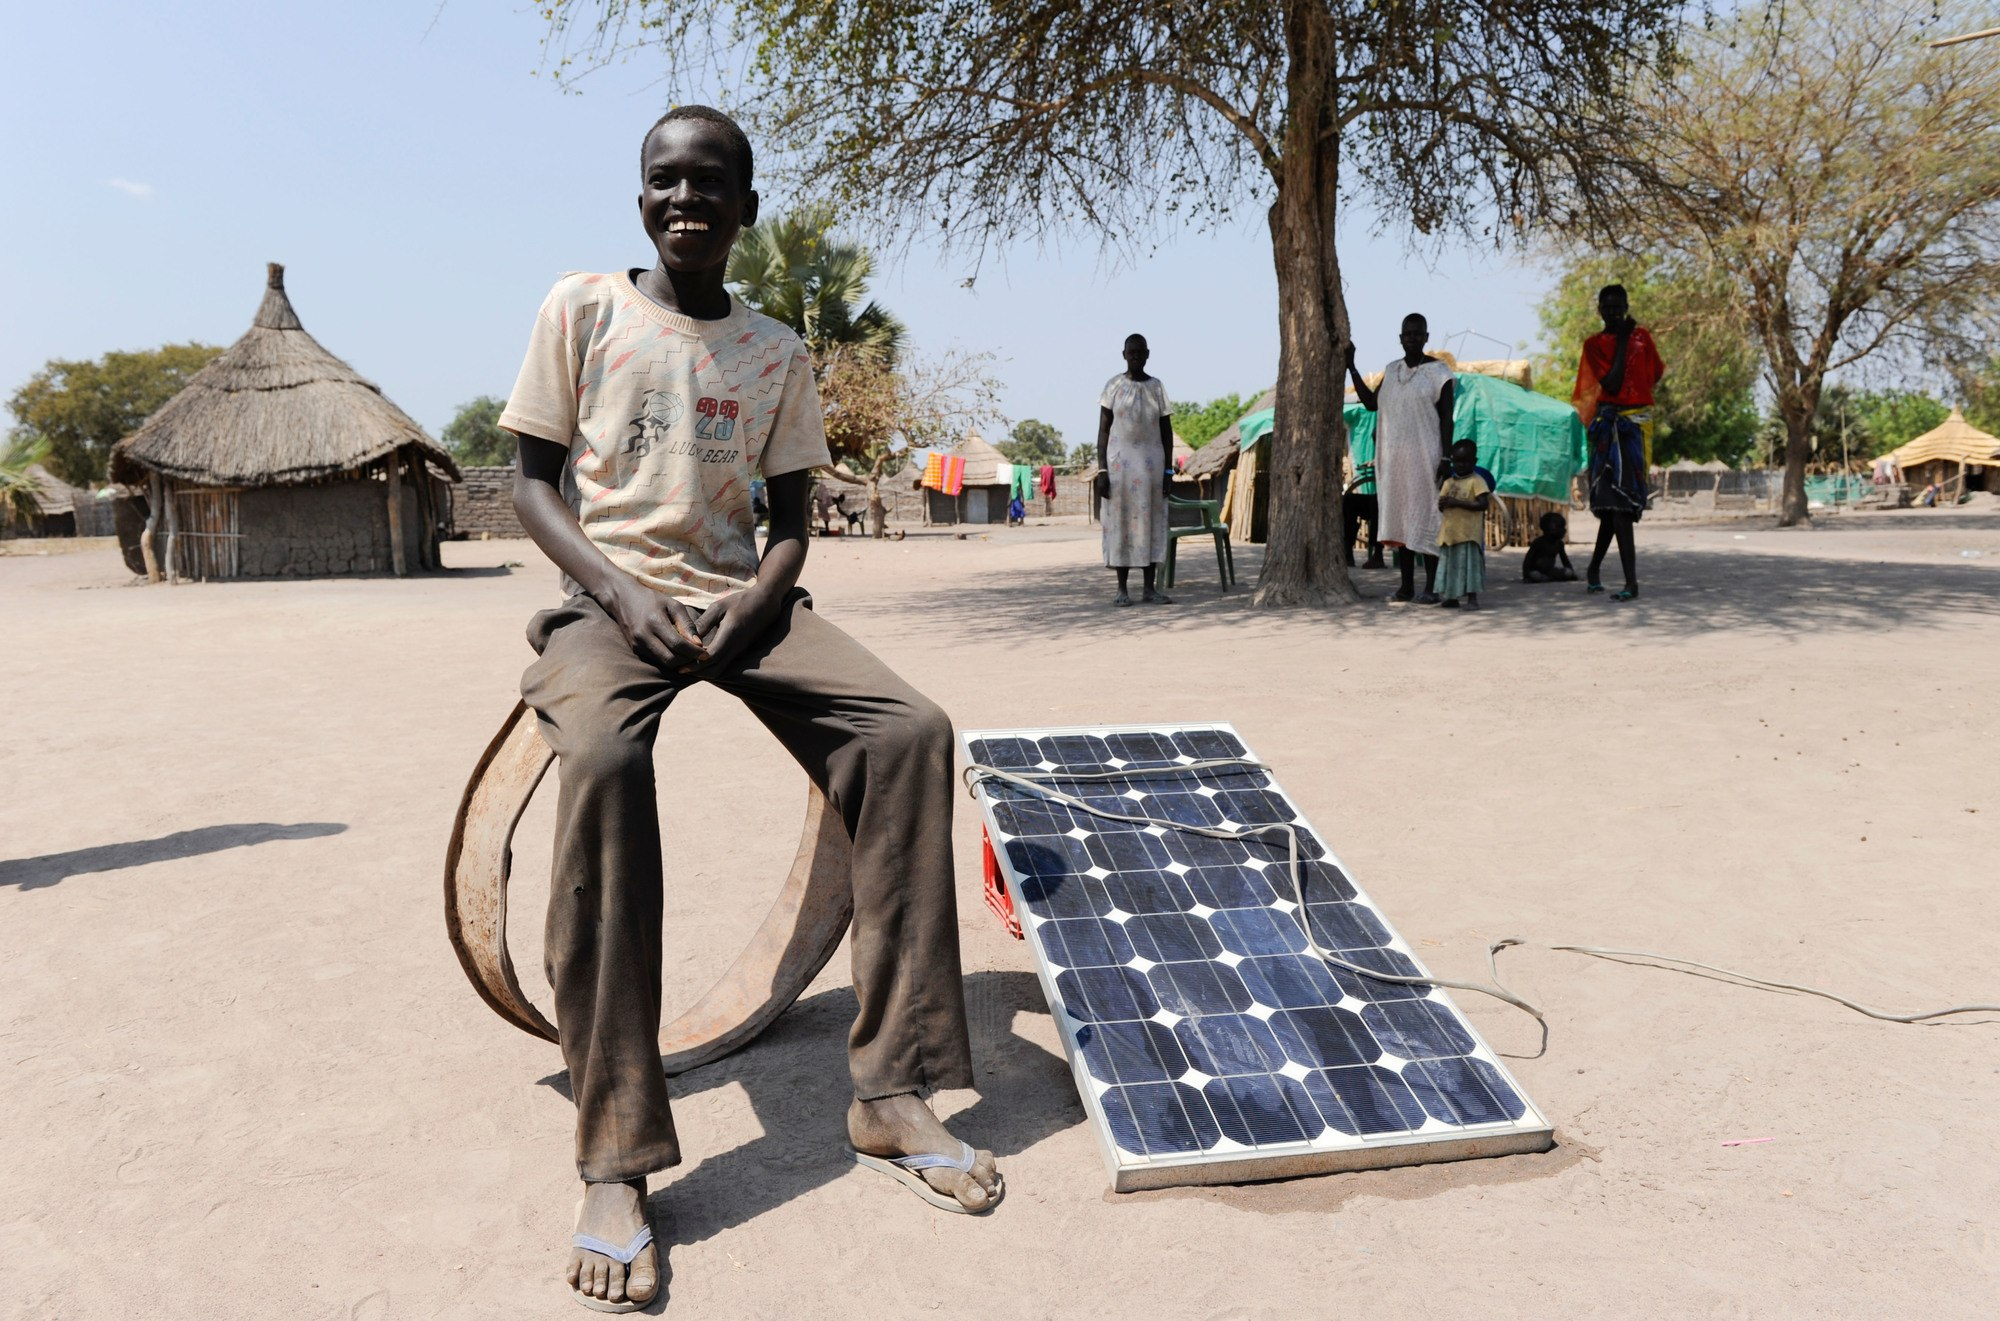 Young African man sitting on some sort of ring next to a solar panel